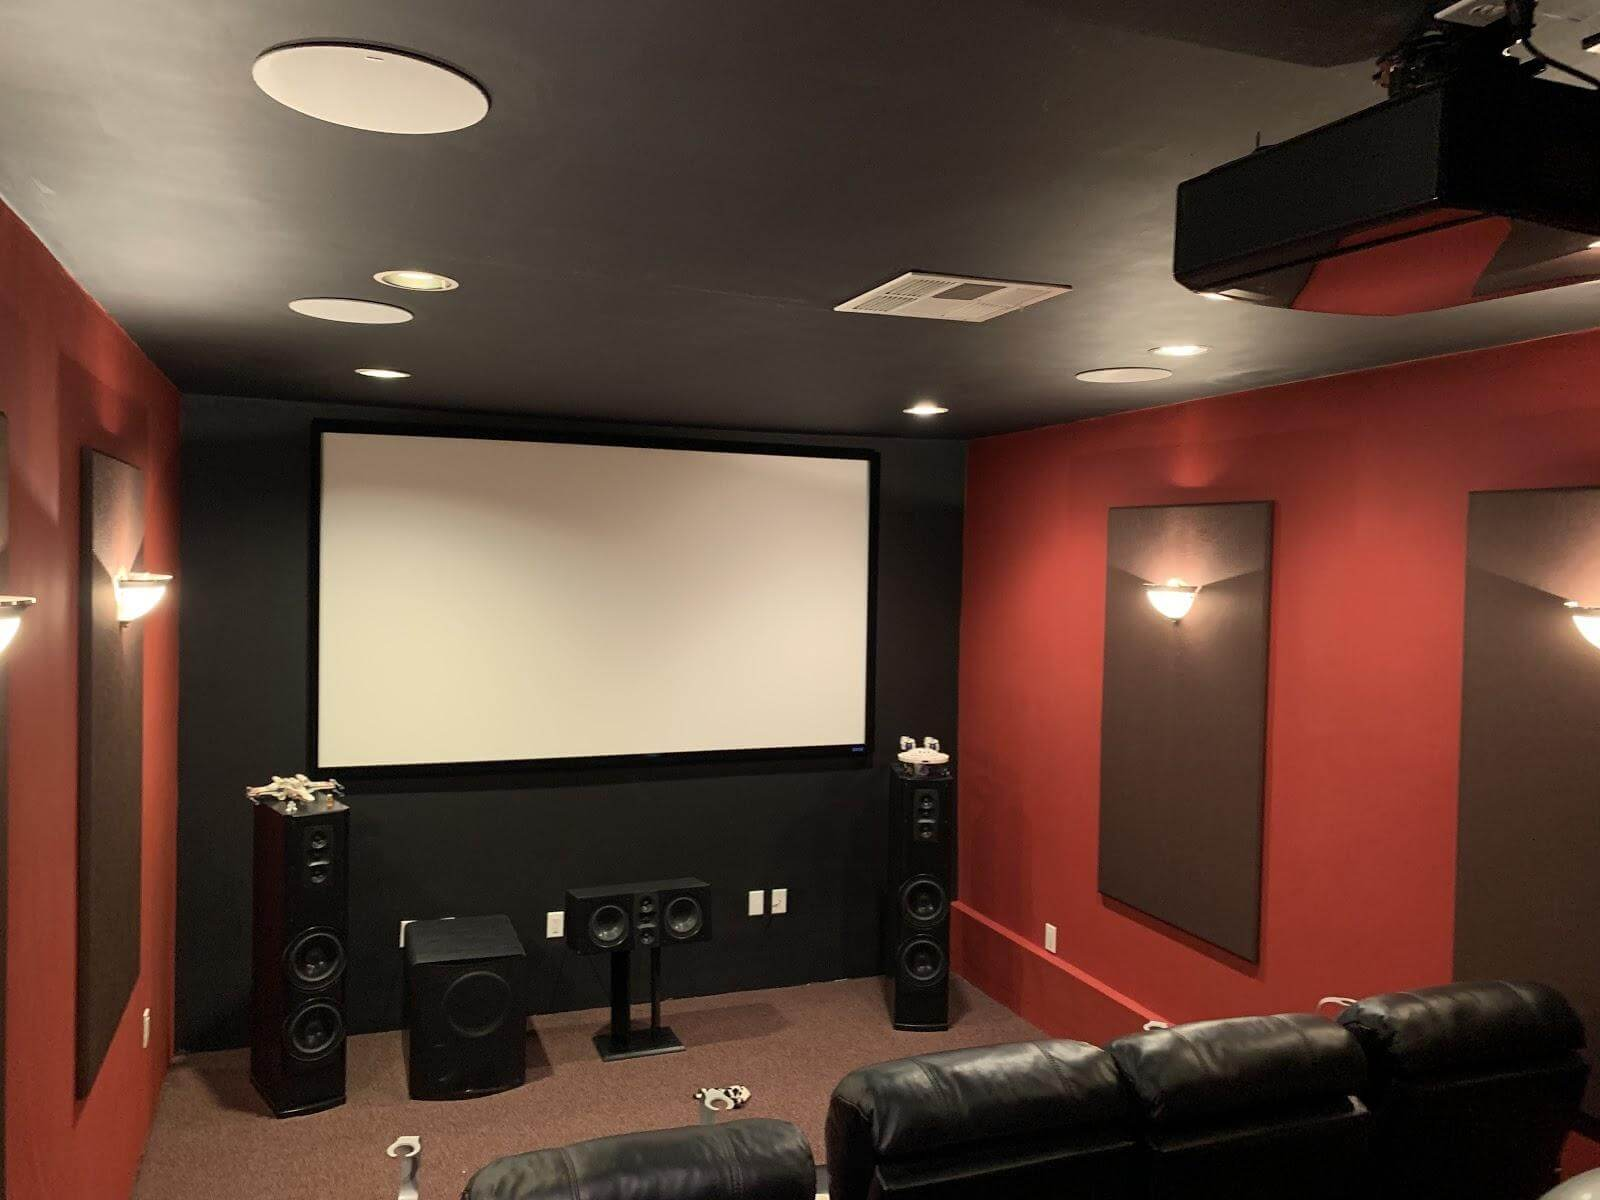 Learning The Basics Of Home Theater Systems - Image 1